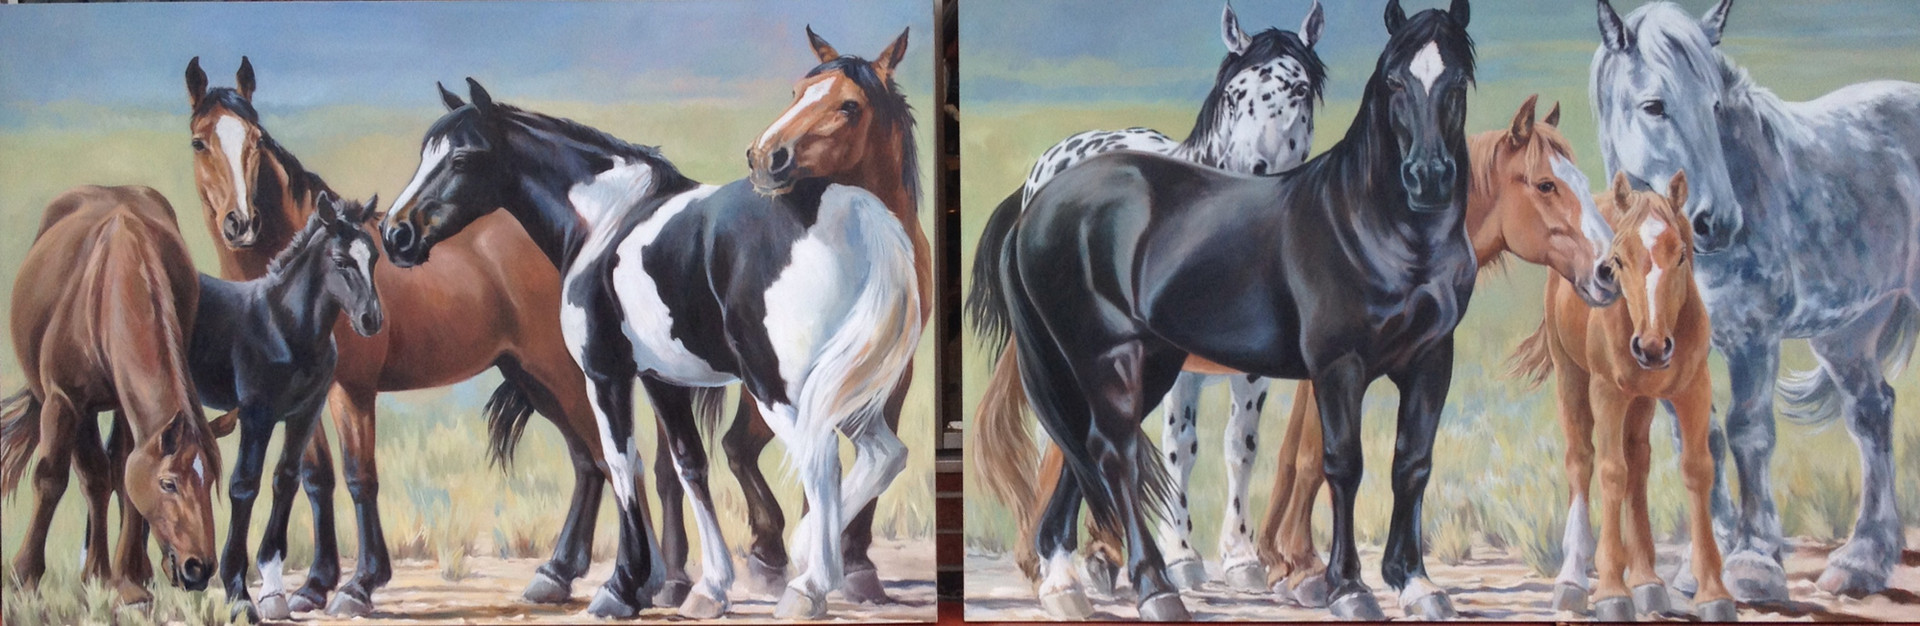 "The Herd / Commission / 144"" x 48"" / Oil on Canvas / SOLD"